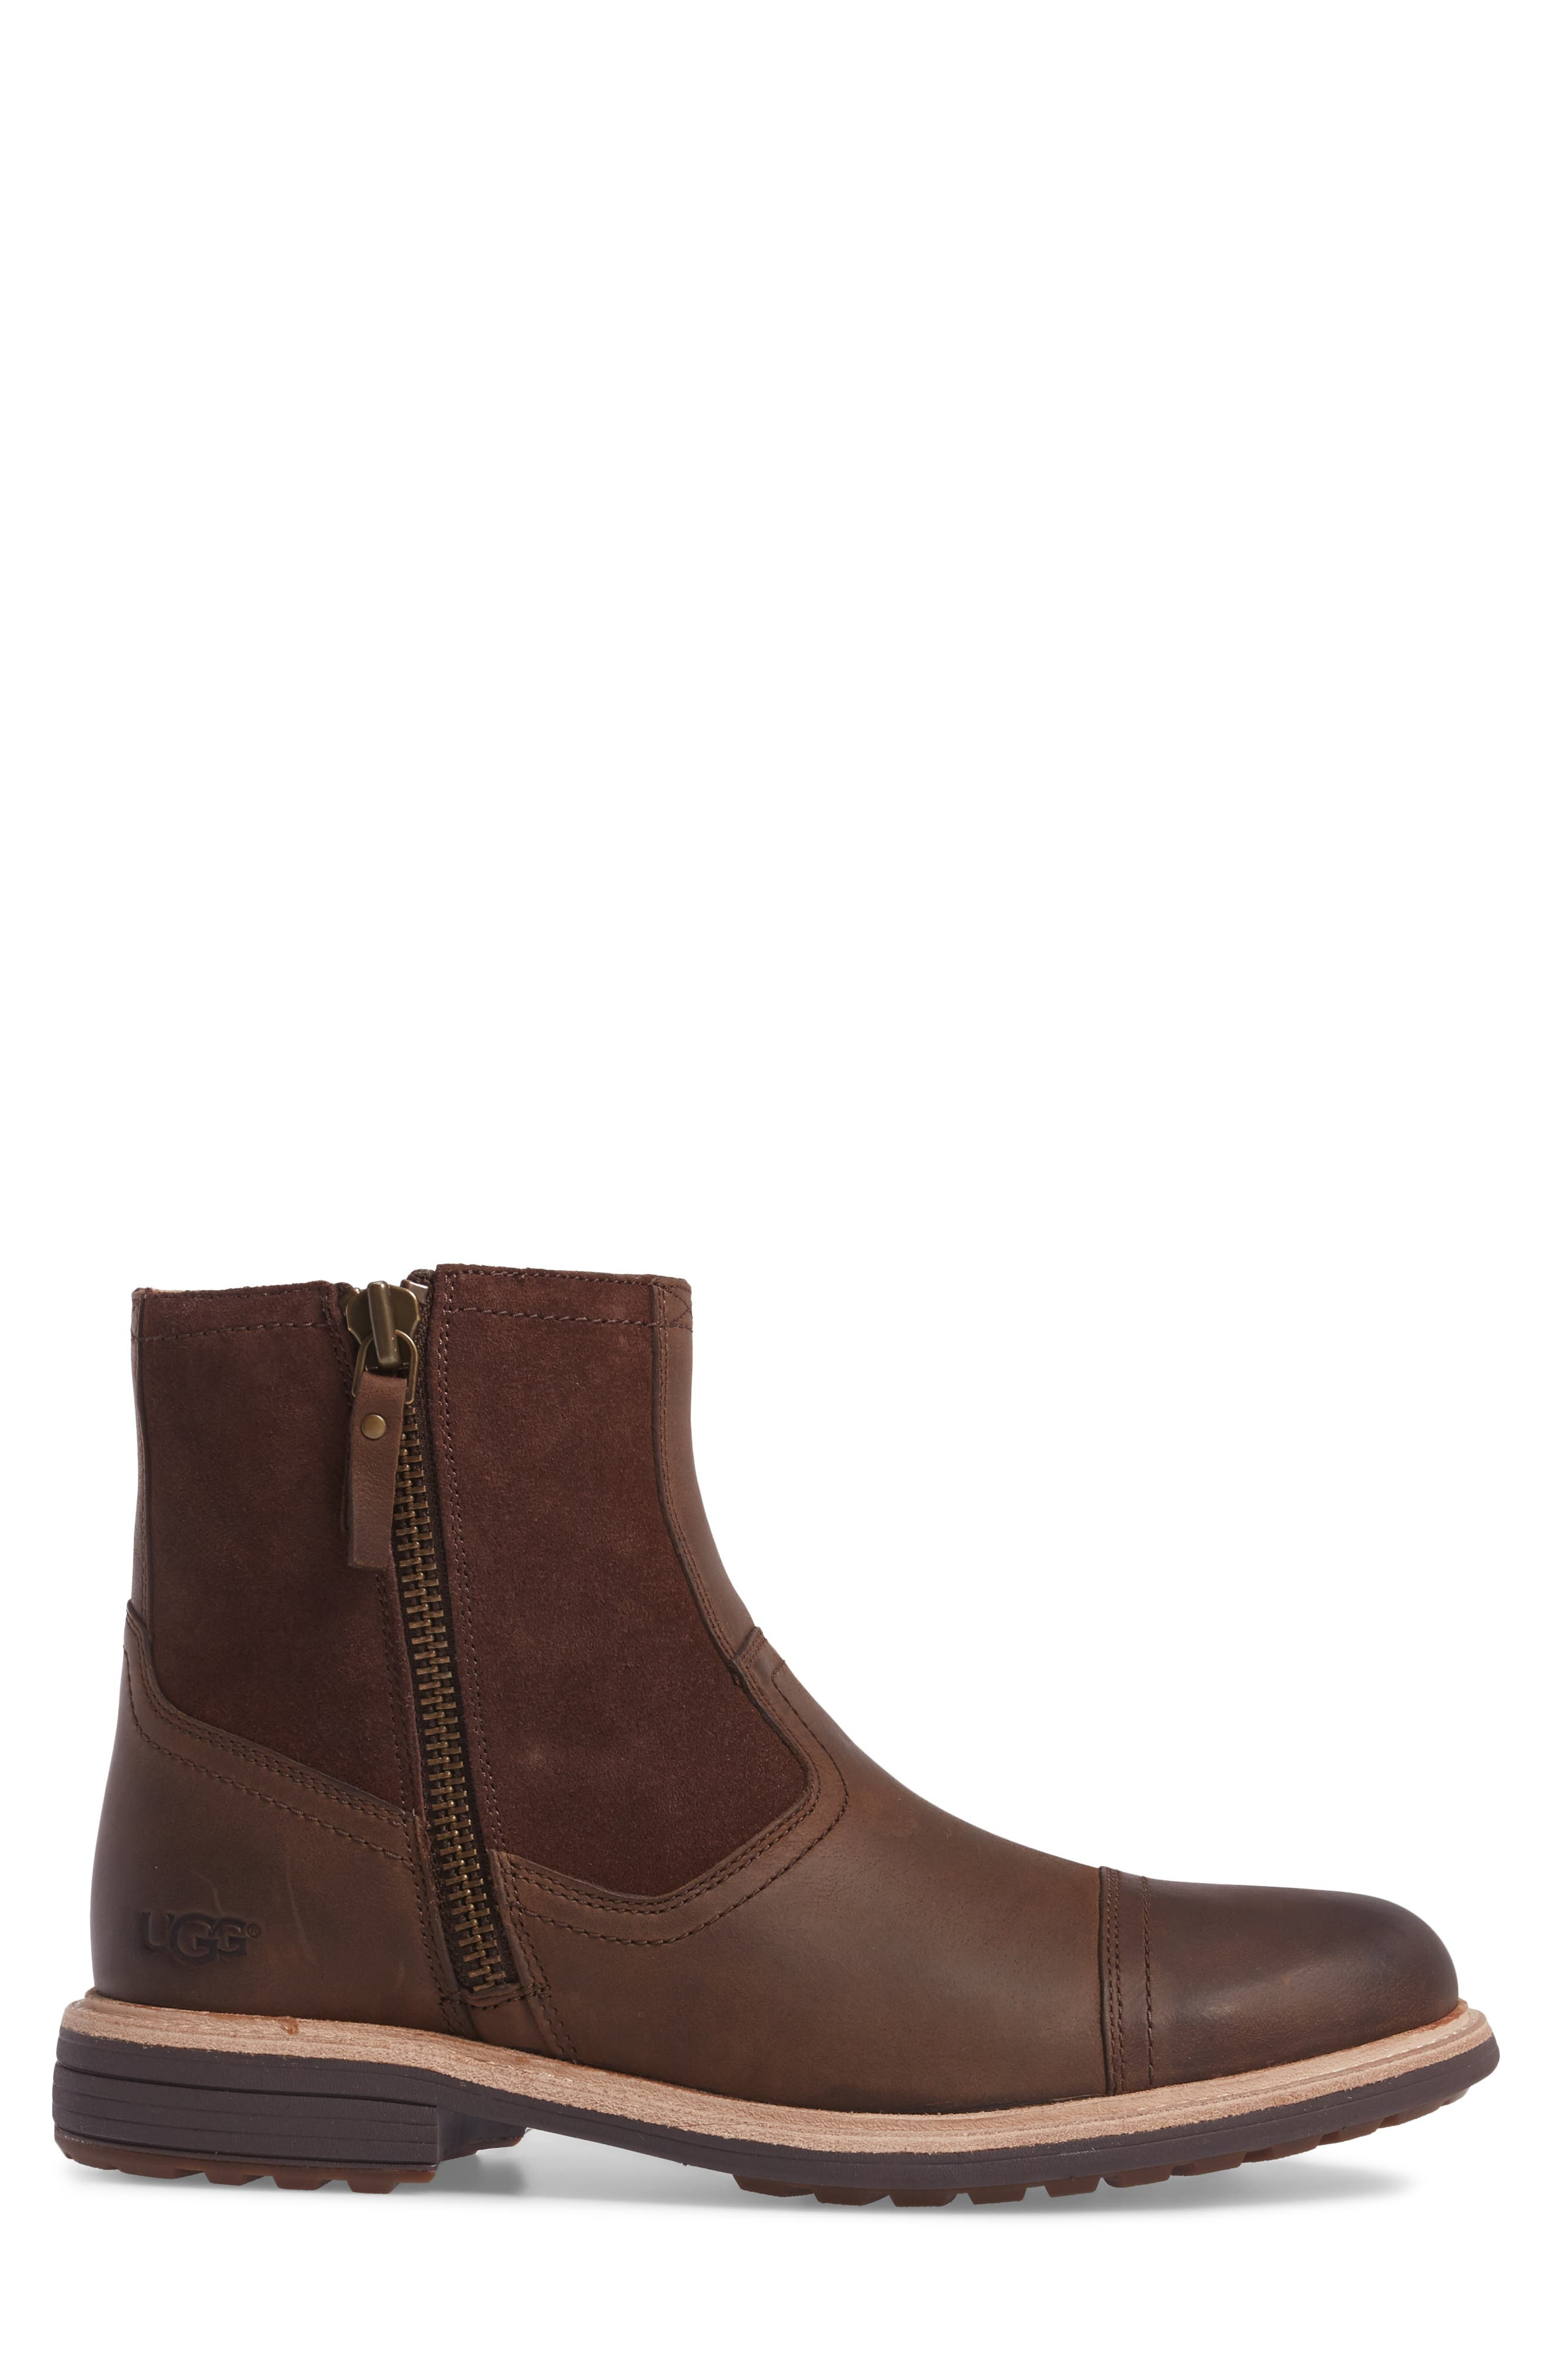 Dalvin Zip Boot with Genuine Shearling,                             Alternate thumbnail 3, color,                             Grizzly